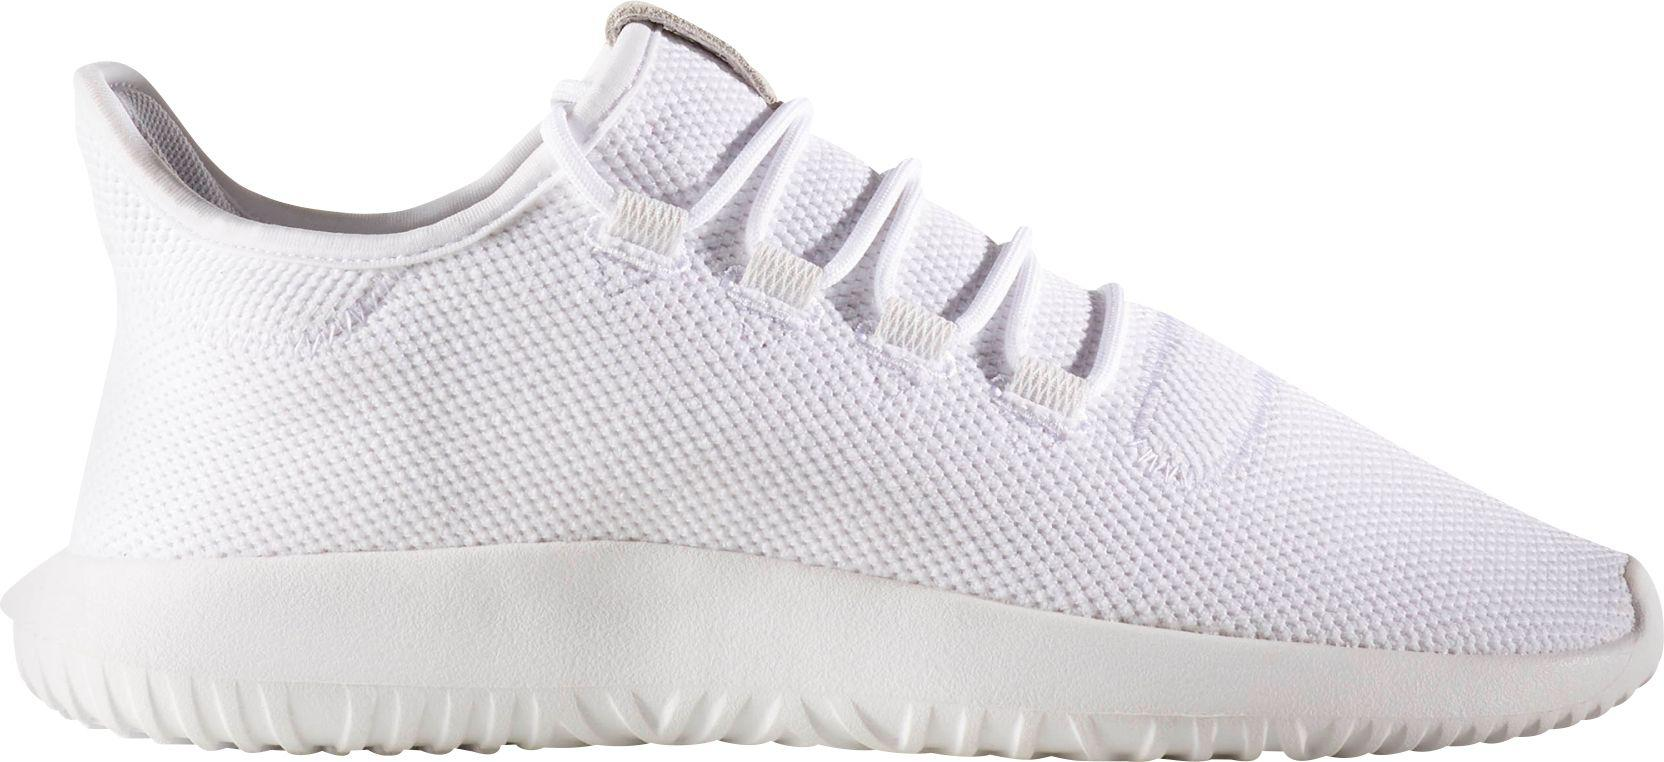 finest selection e5fd9 cf503 Adidas - White Originals Tubular Shadow Shoes for Men - Lyst